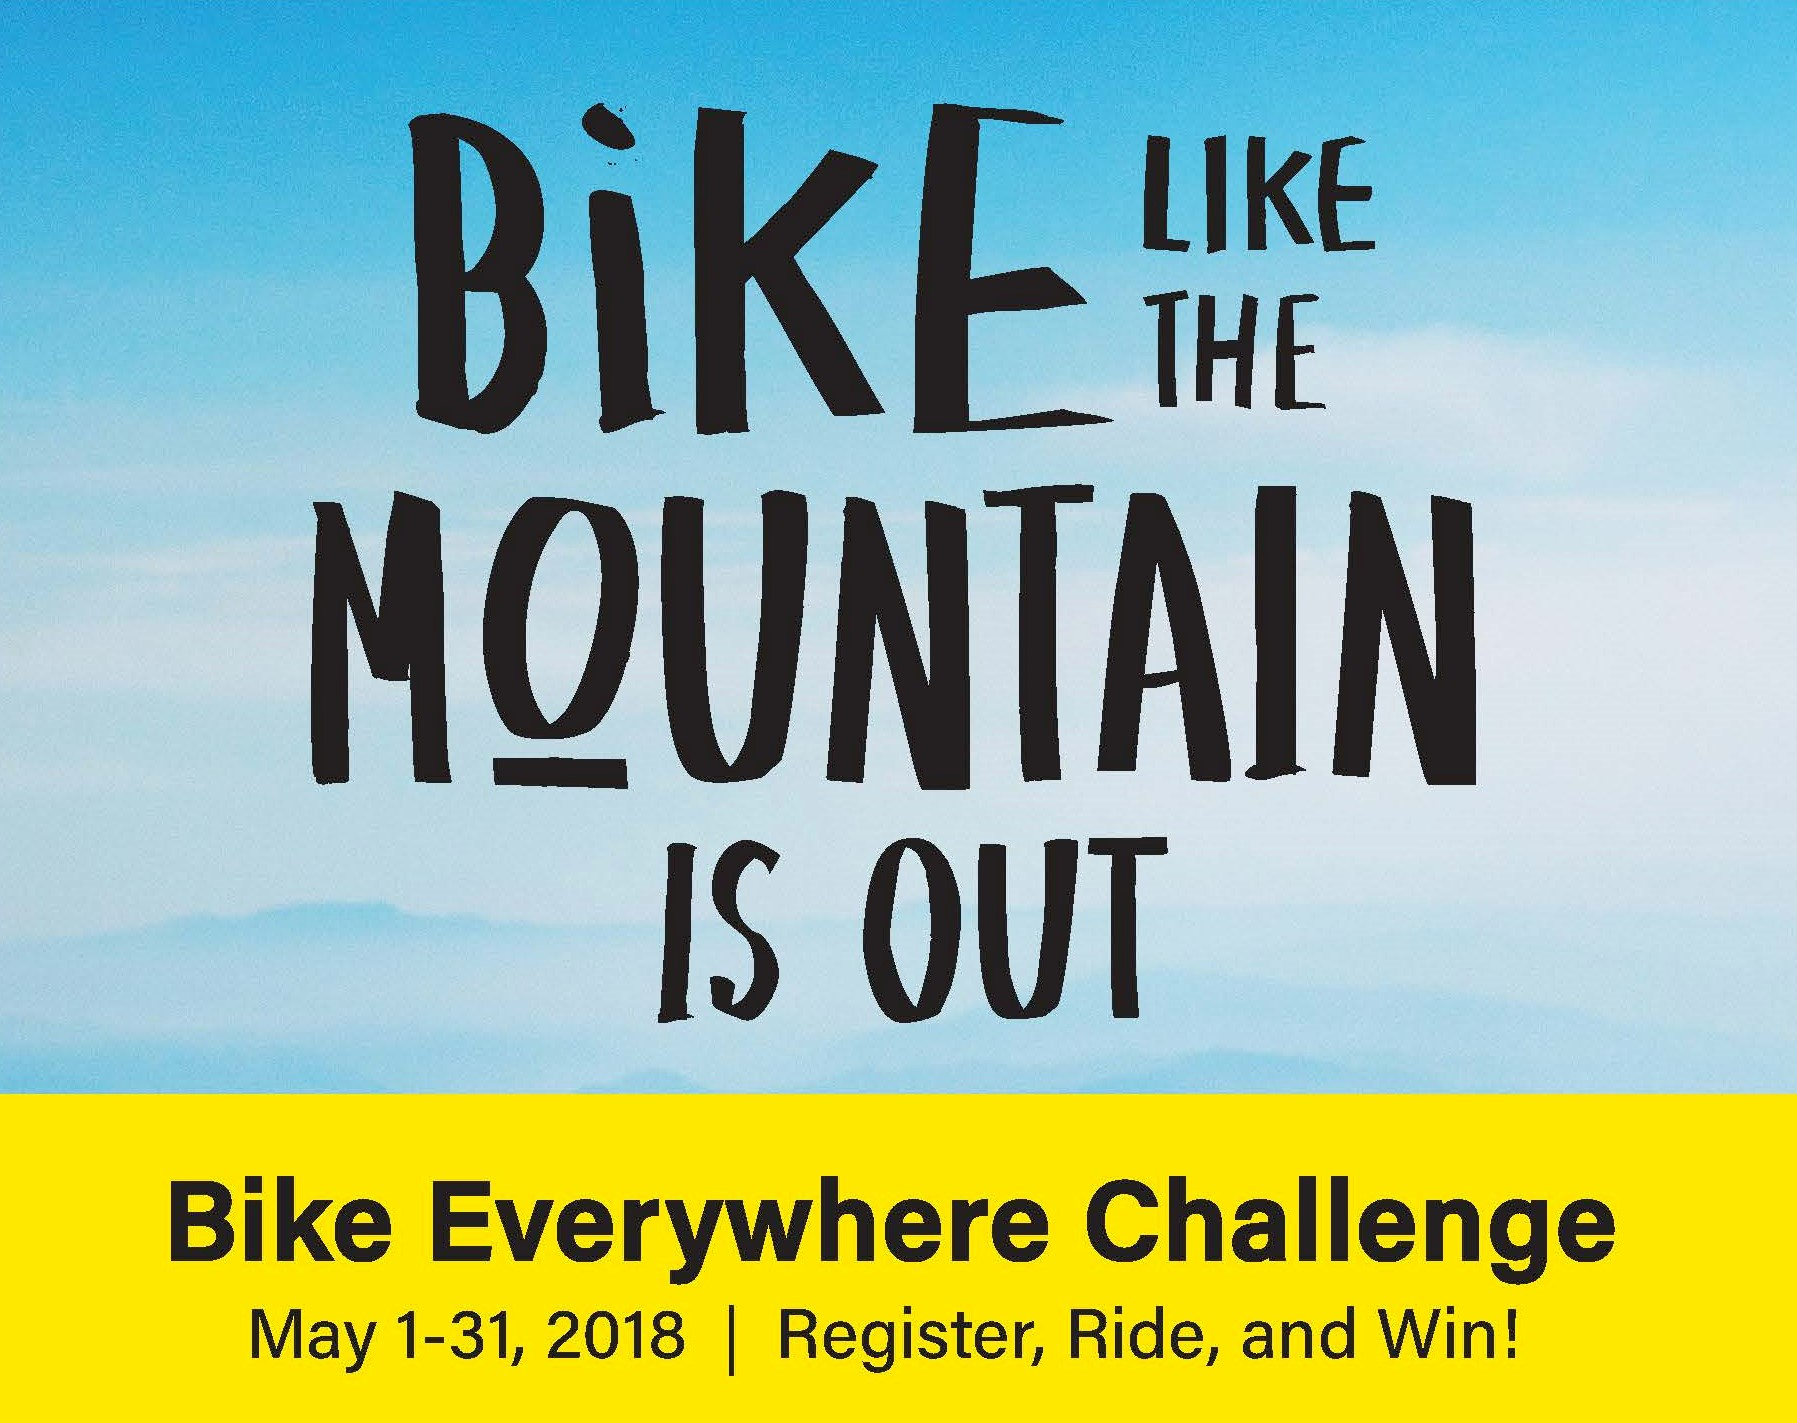 Bike Everywhere Challenge